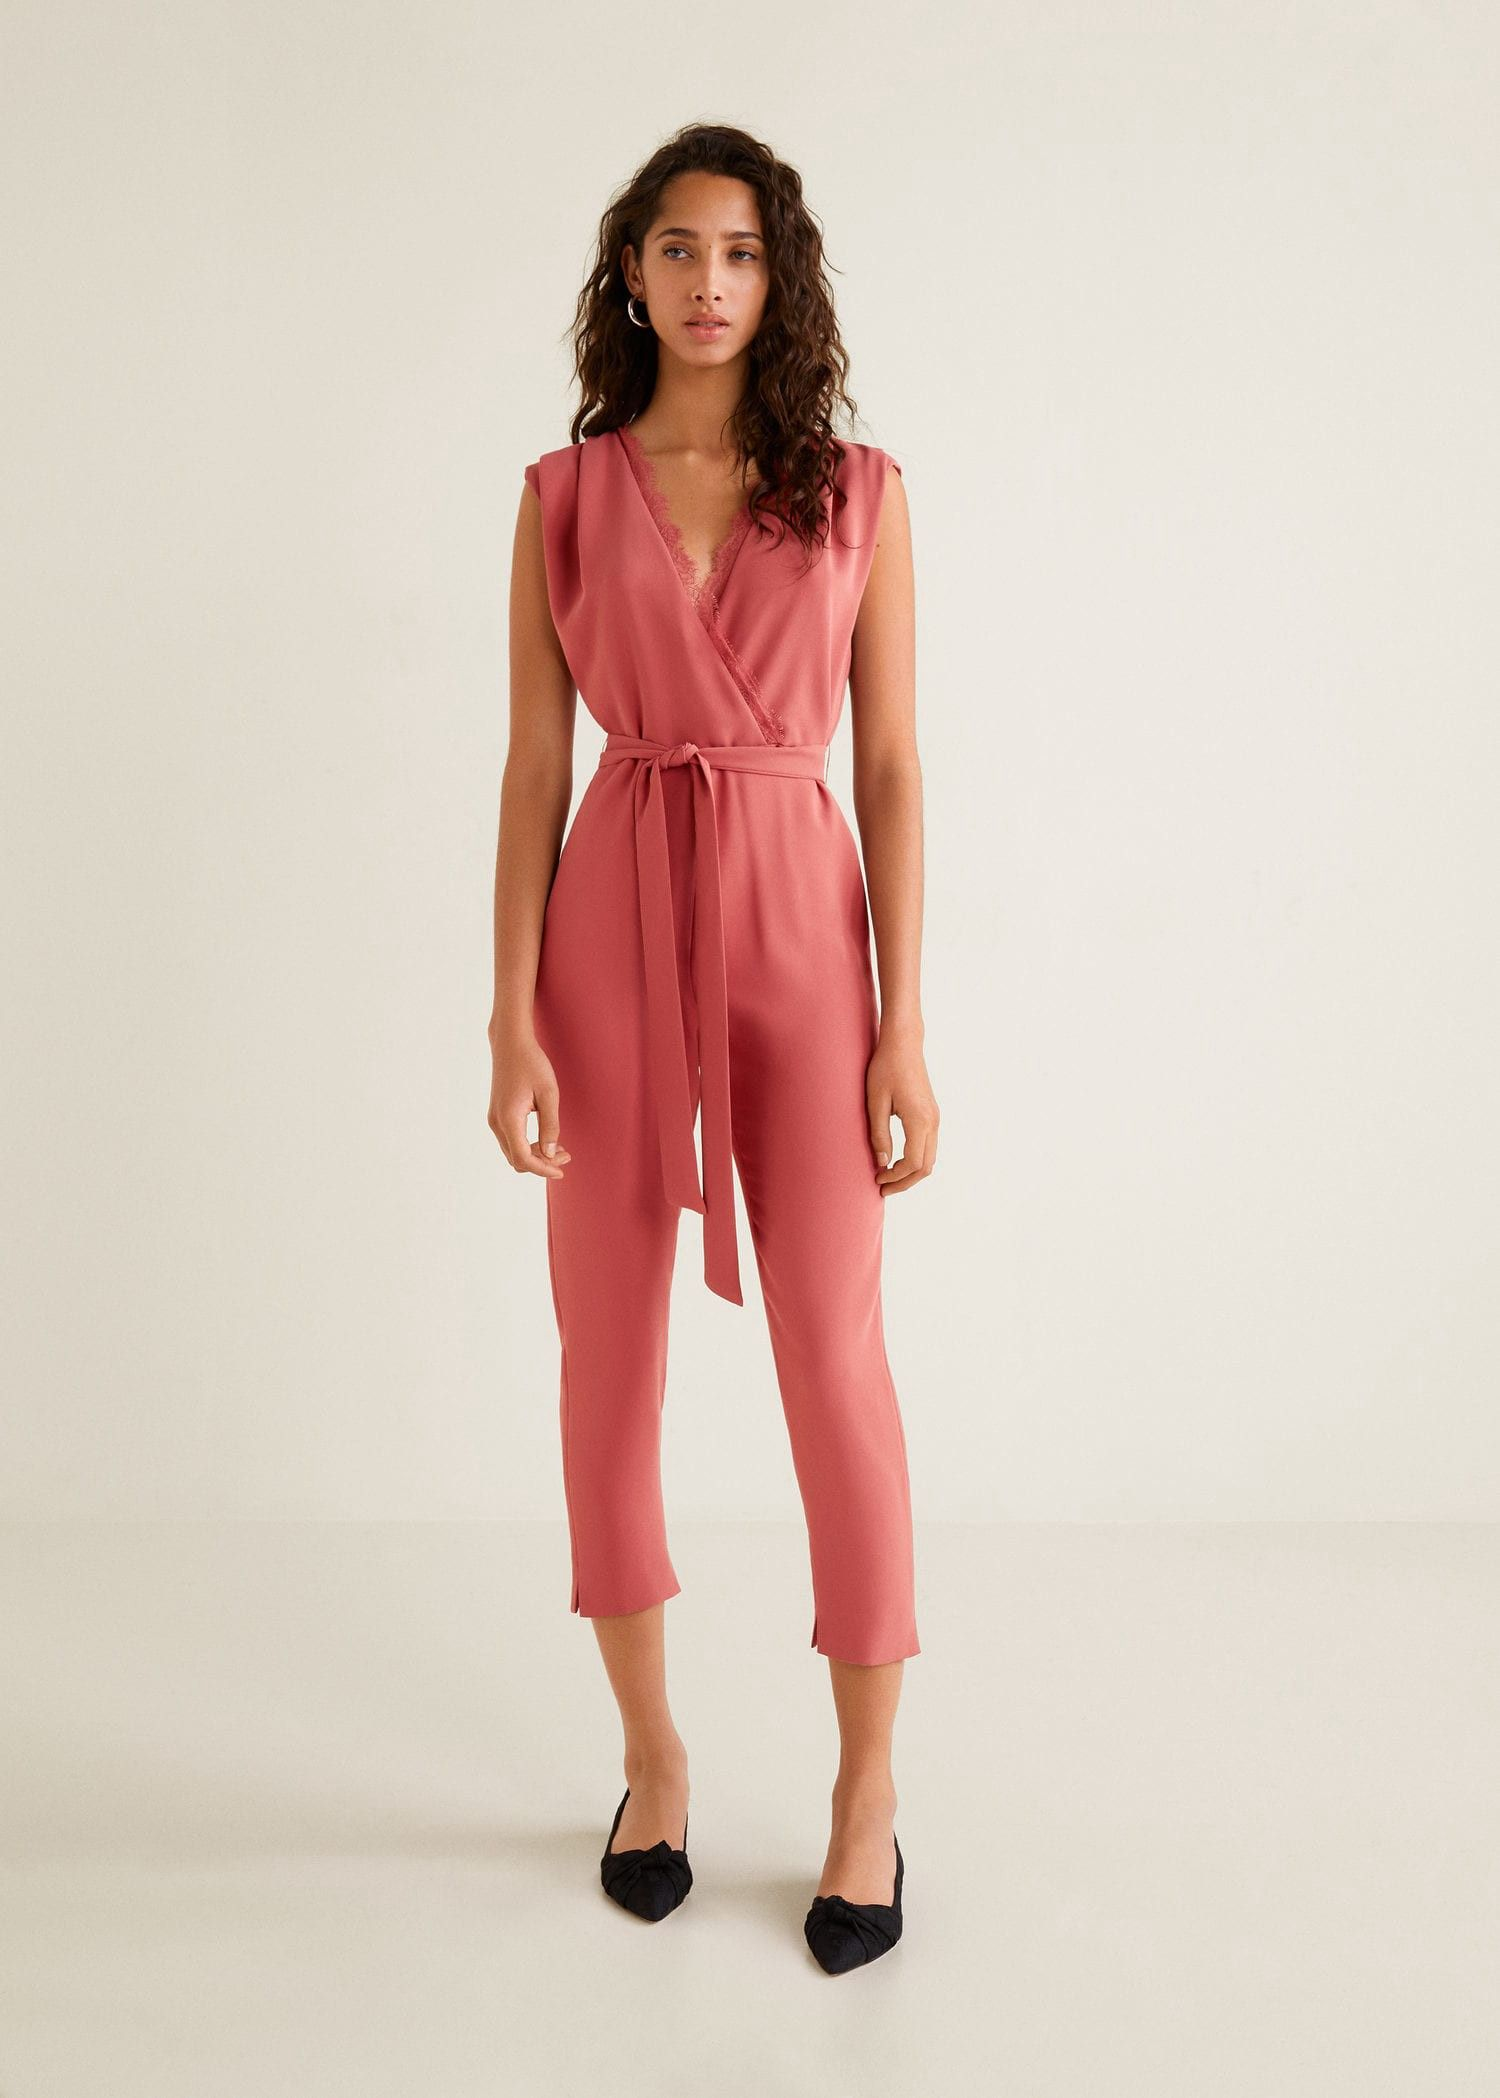 aa99ad21799 Lace v-neckline jumpsuit by Mango in 2019